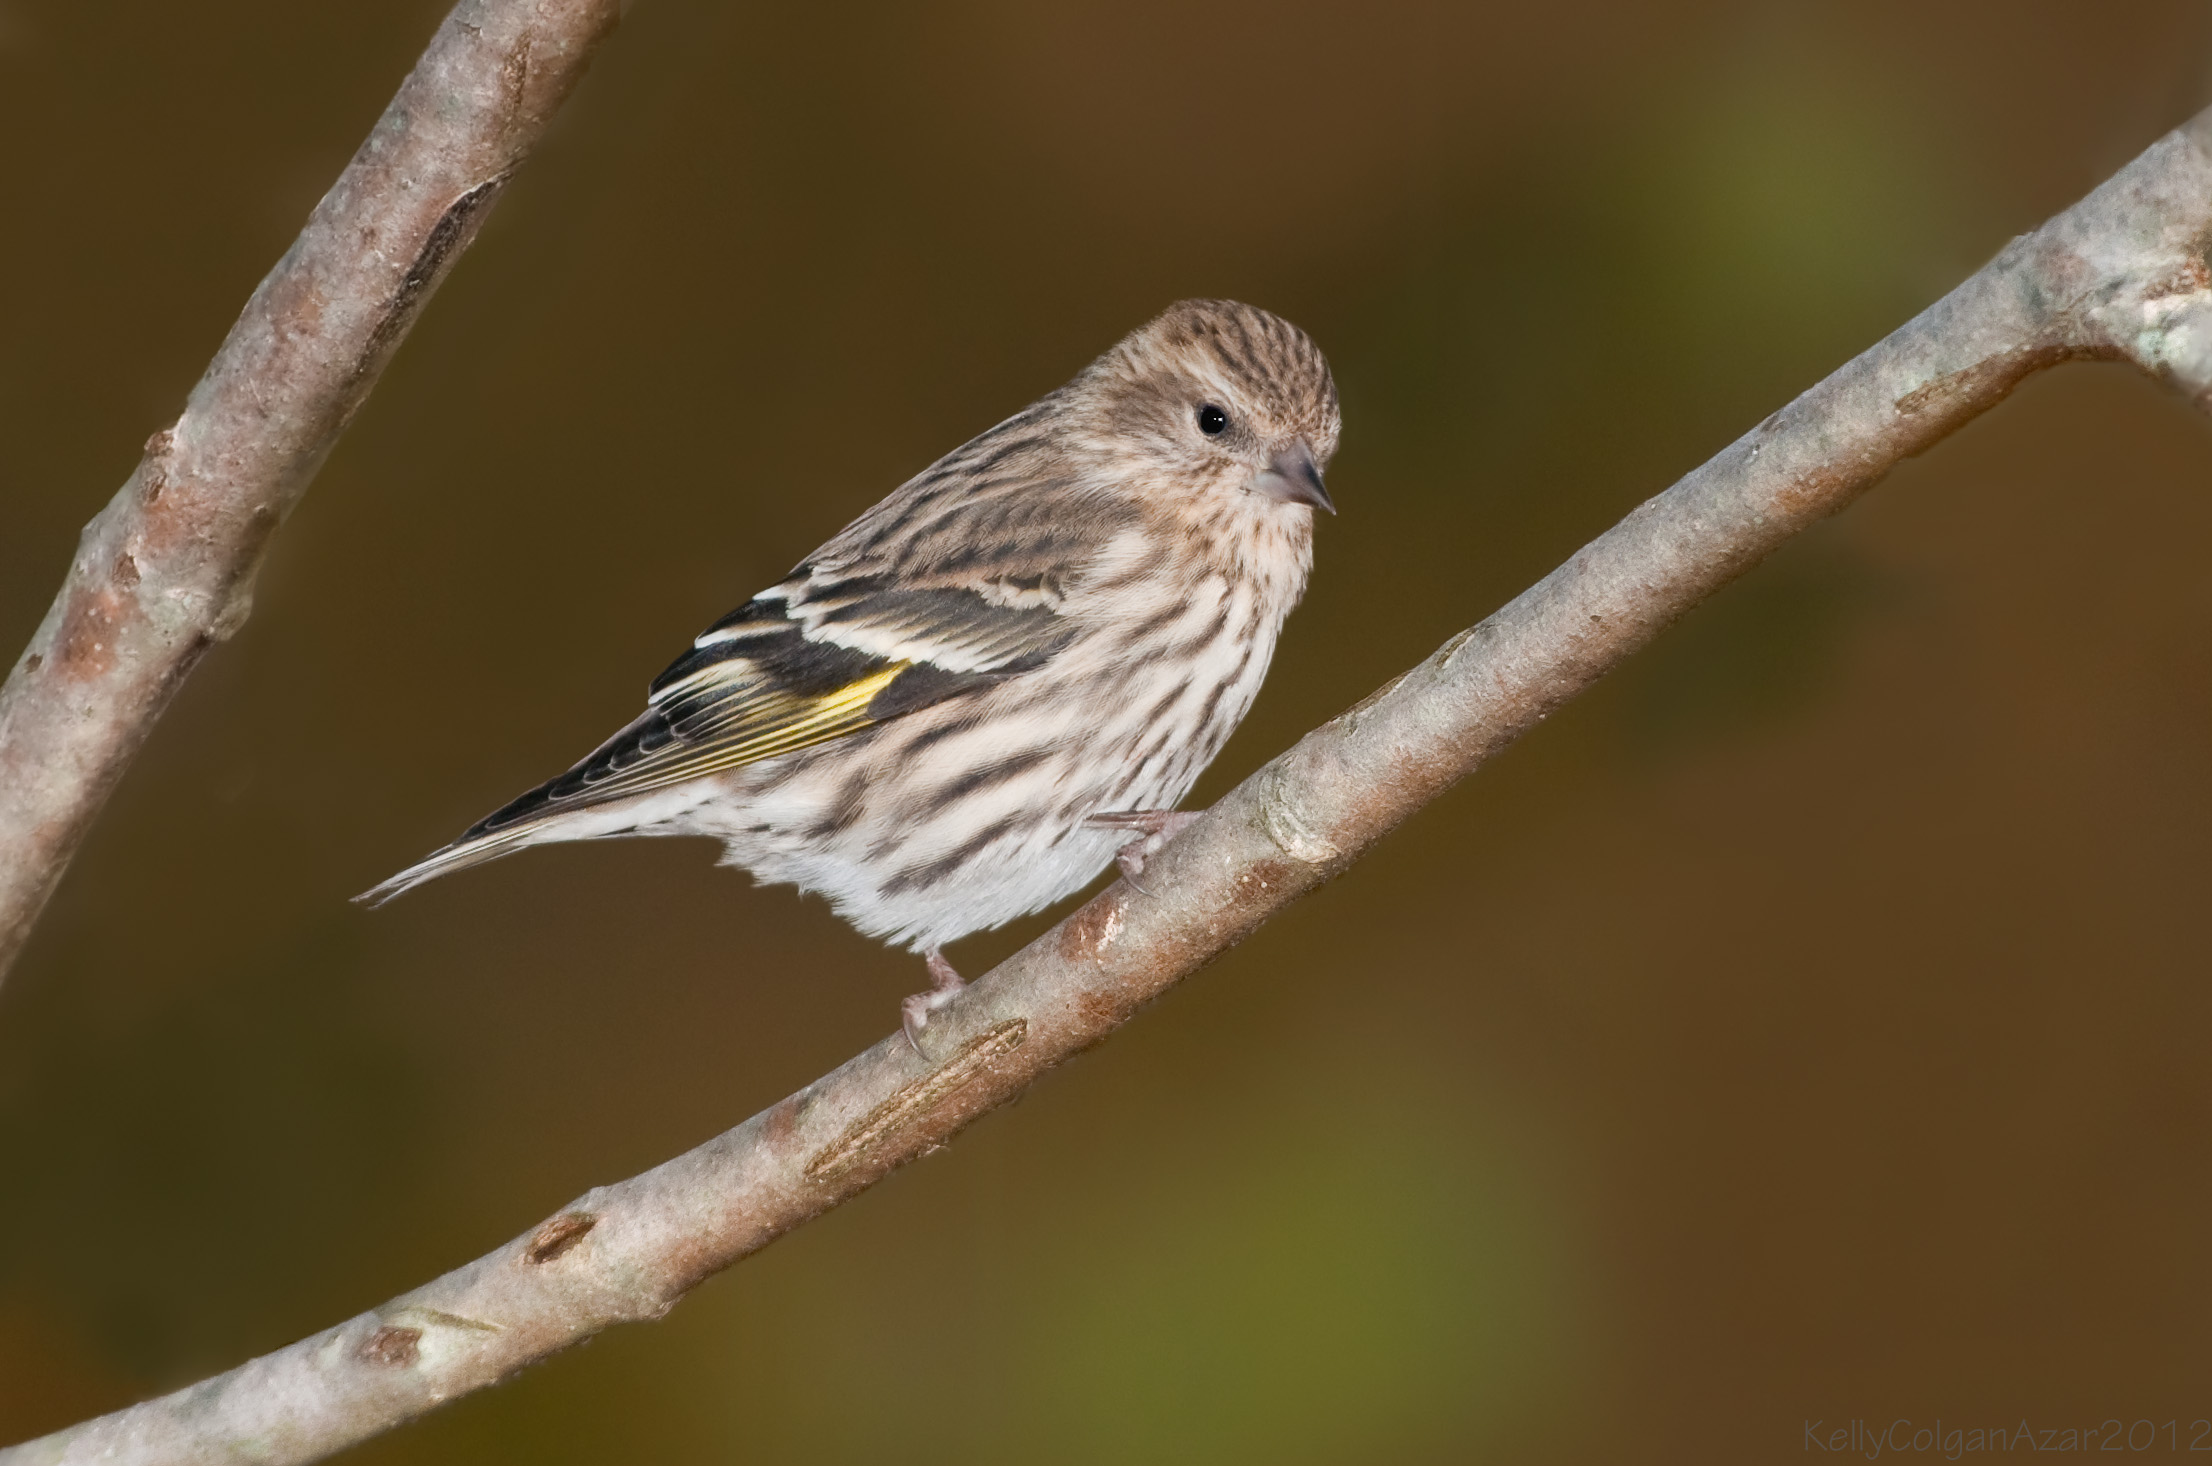 - Pine Siskin (Spinus pinus)Pine Siskins live in coniferous and mixed woodlands. Their diet consists of seeds, some insects, and minerals such as salt. They weigh 0.4-0.6 oz. and have a wingspan of 7.1-8.7 in. Pine Siskins sing a buzzy, chirpy song. They are protected on the US Migratory Bird list.Photo Credits: Kelly Colgan Azar